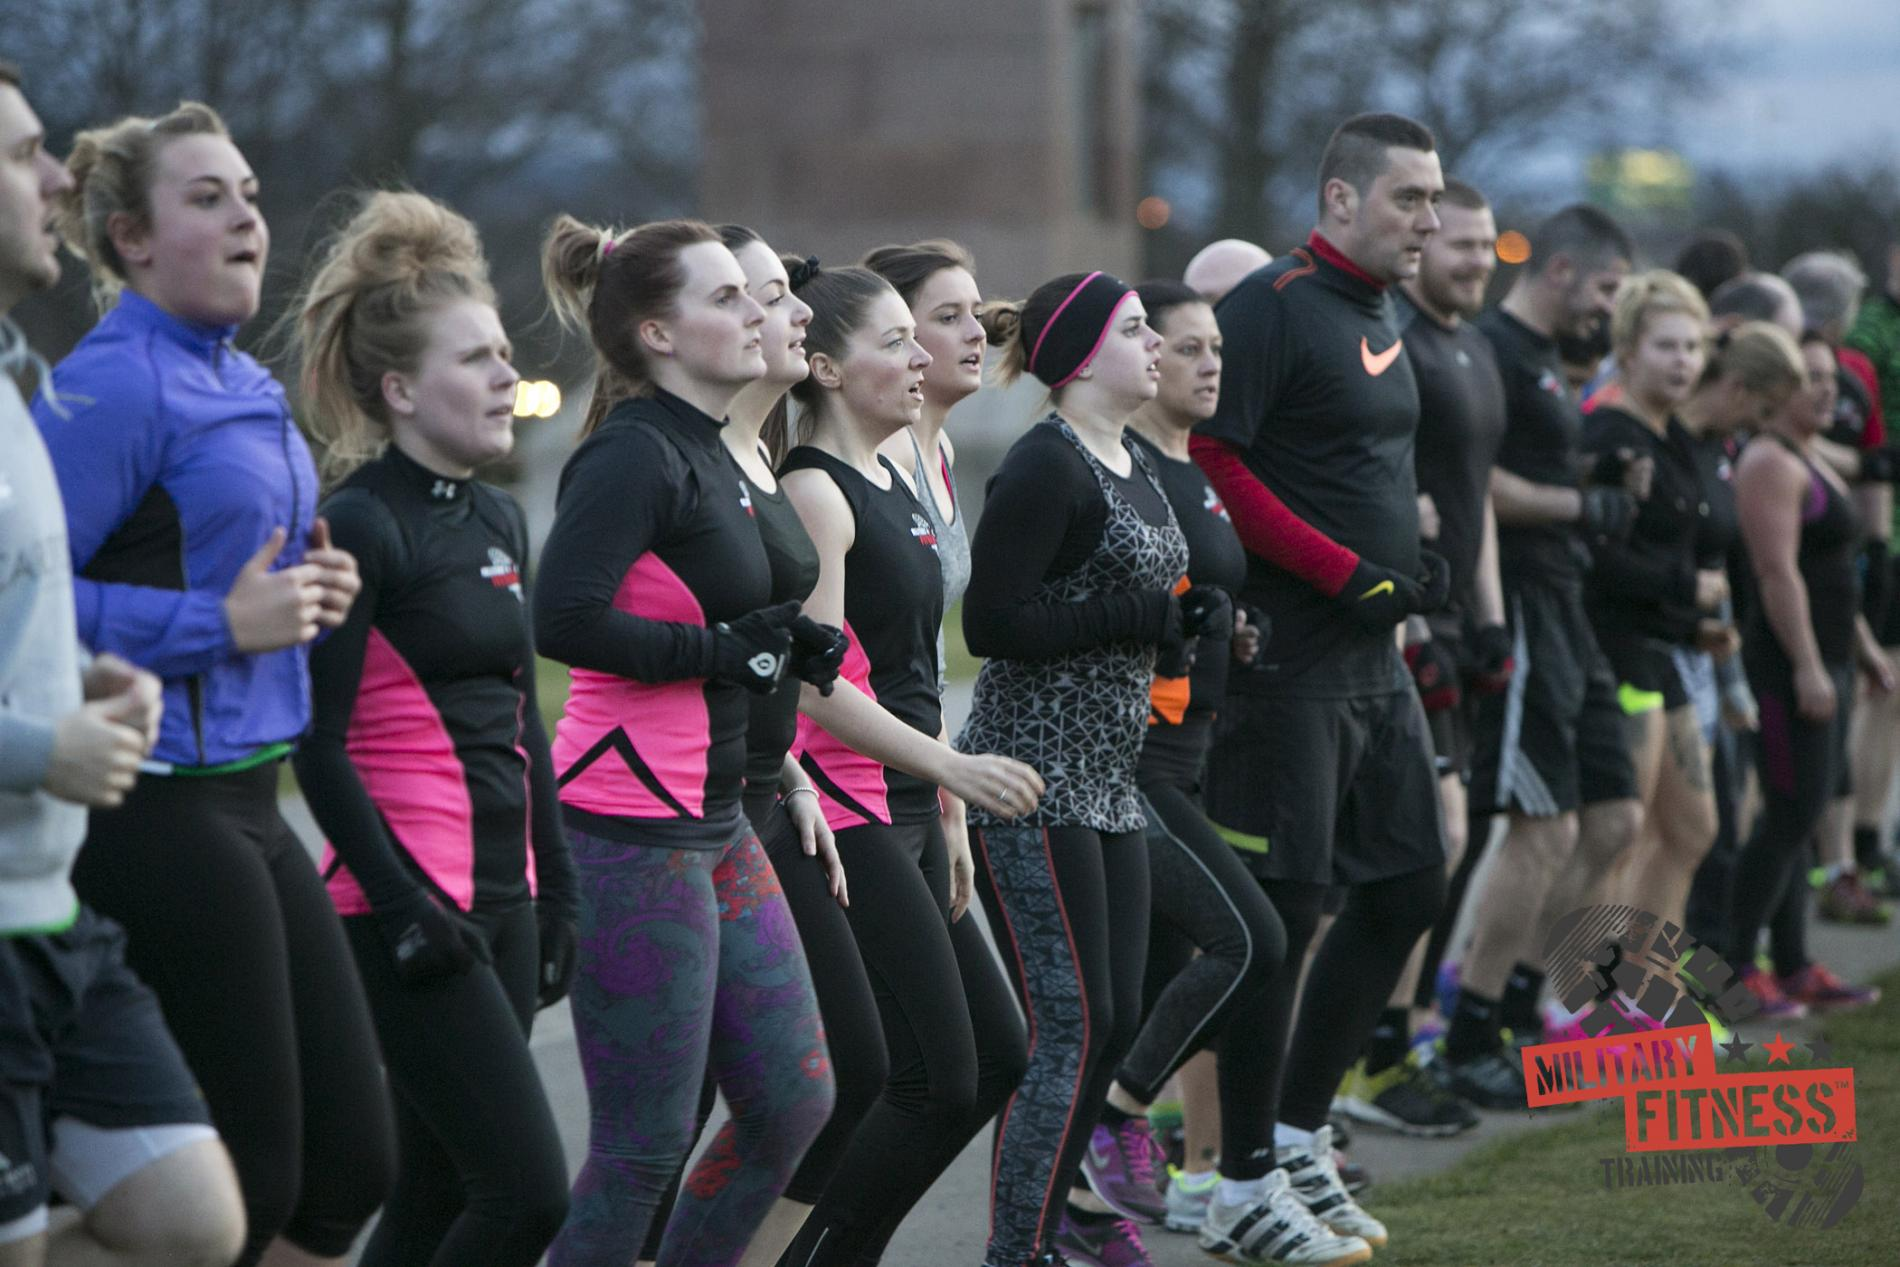 Military Fitness Training in Aberdeen - A Workout Like No Other